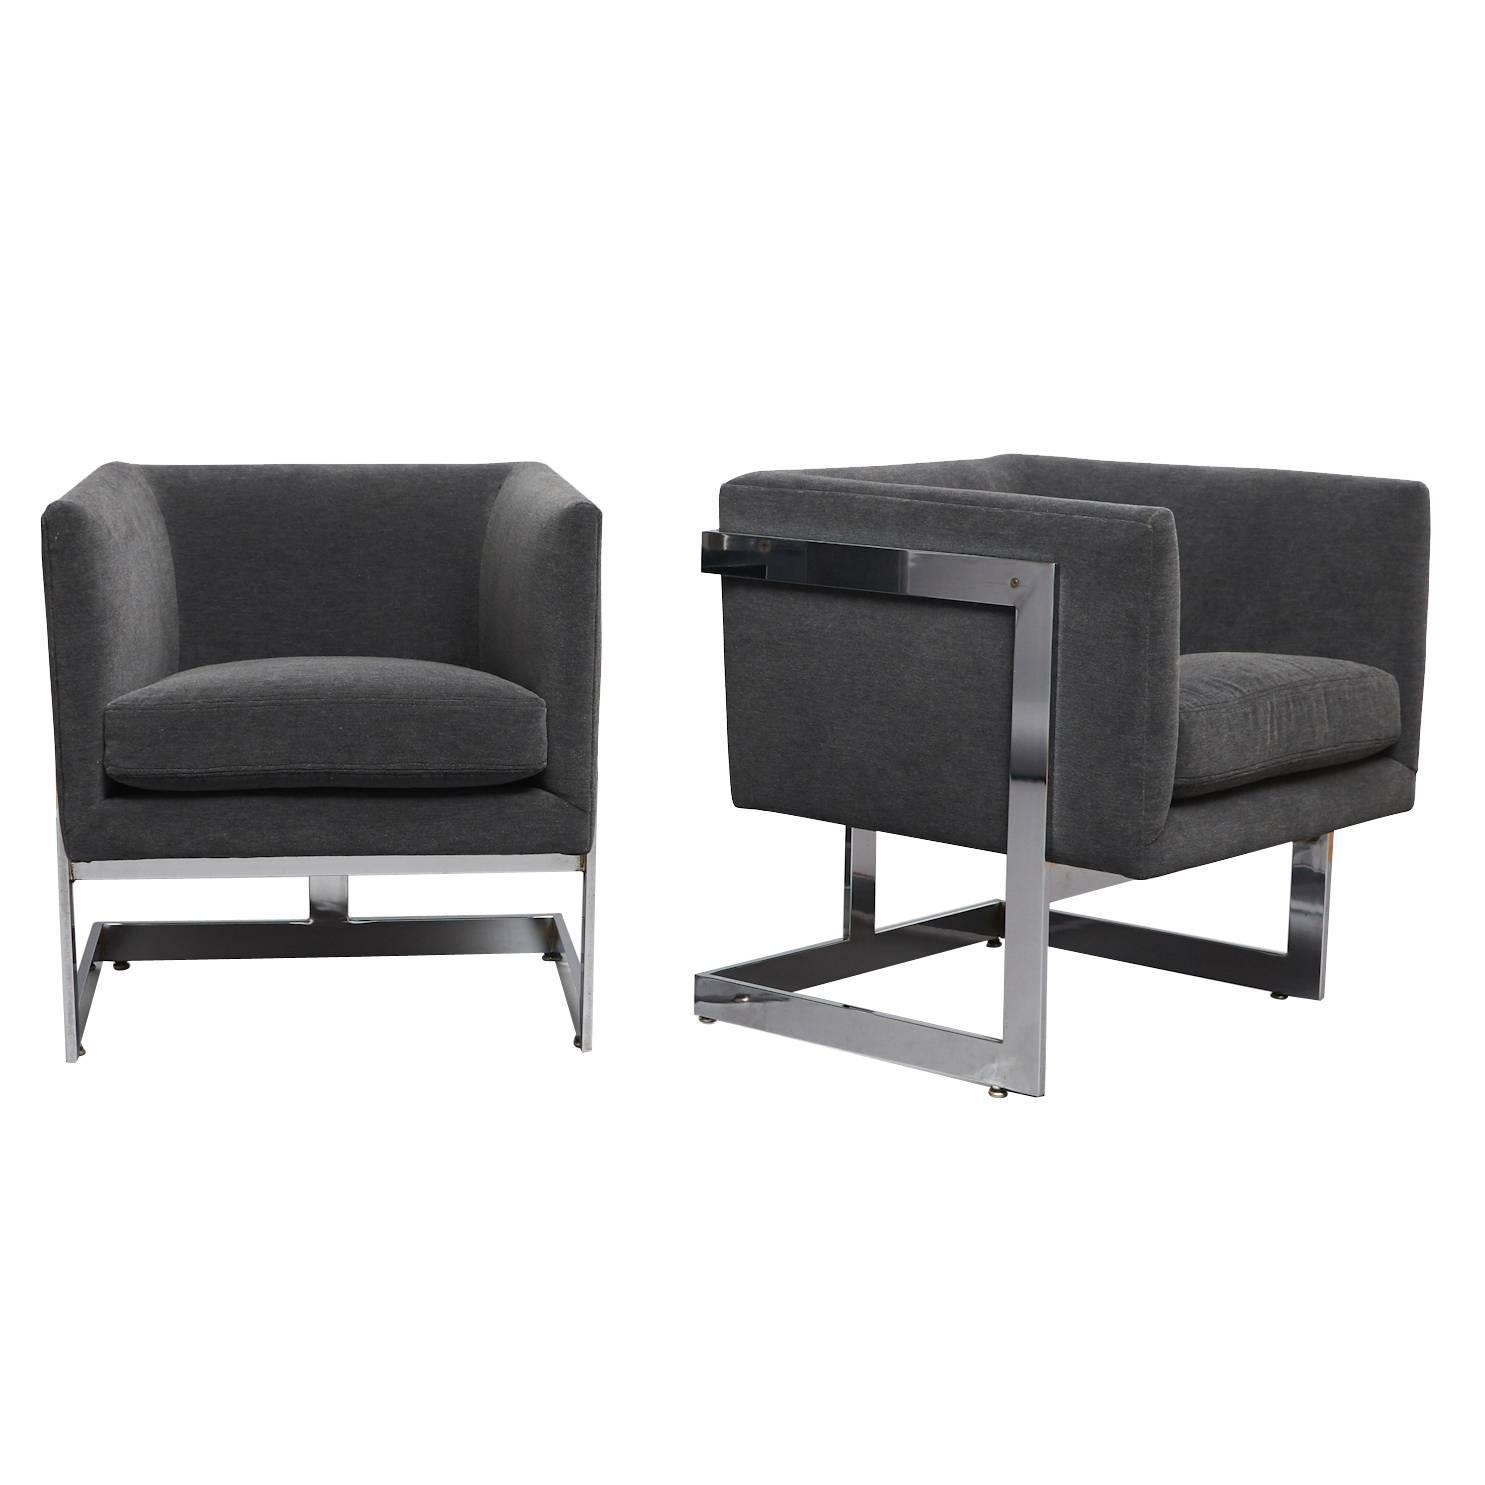 "Pair of Club Chairs Milo Baughman ""T Back"" For Sale at 1stdibs"